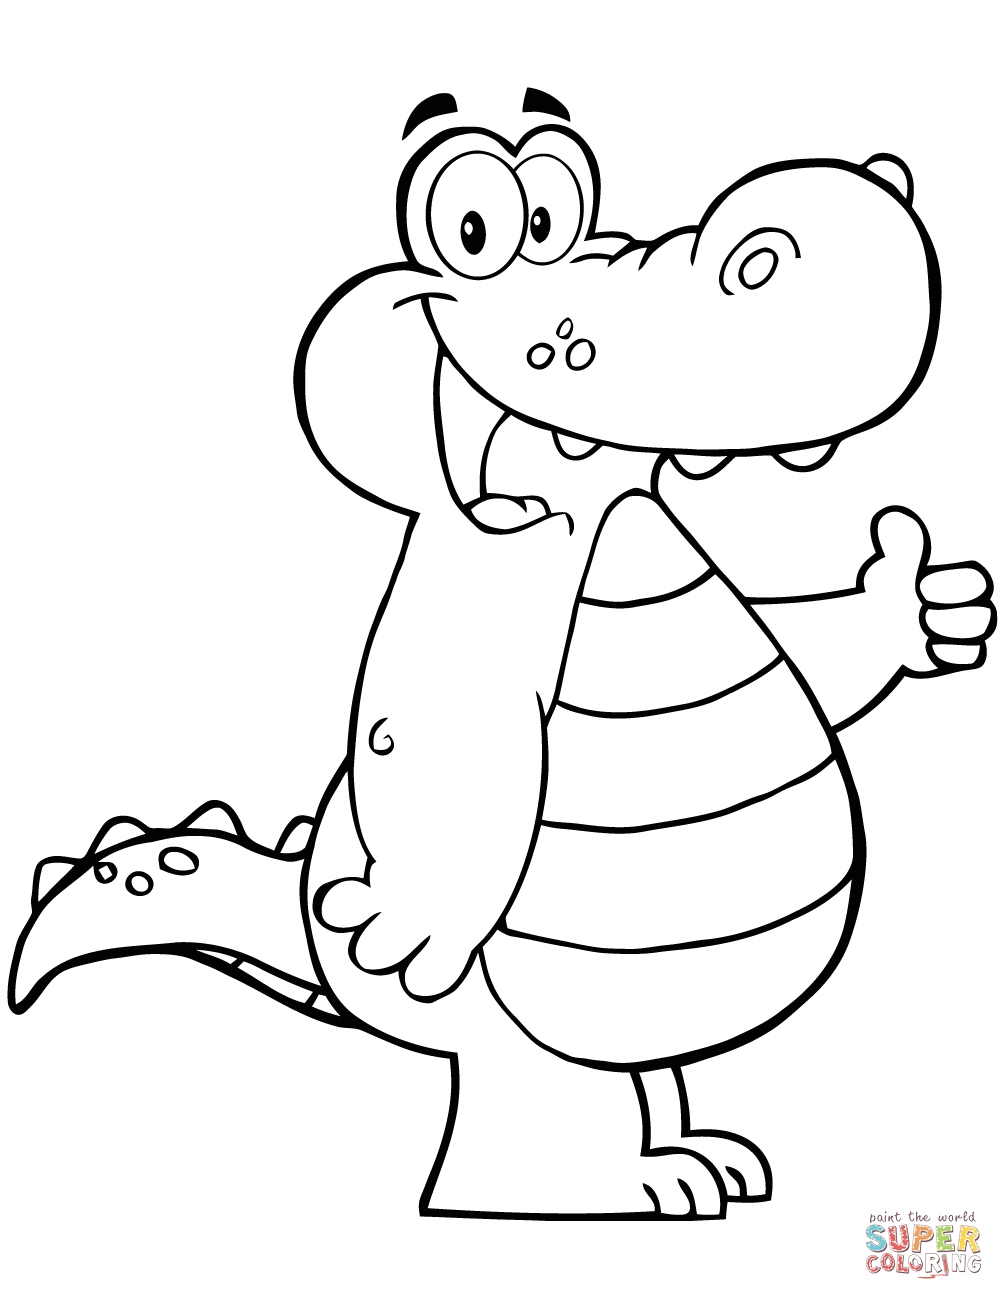 cartoon alligator coloring pages collection of alligator coloring pages alligator pages cartoon coloring